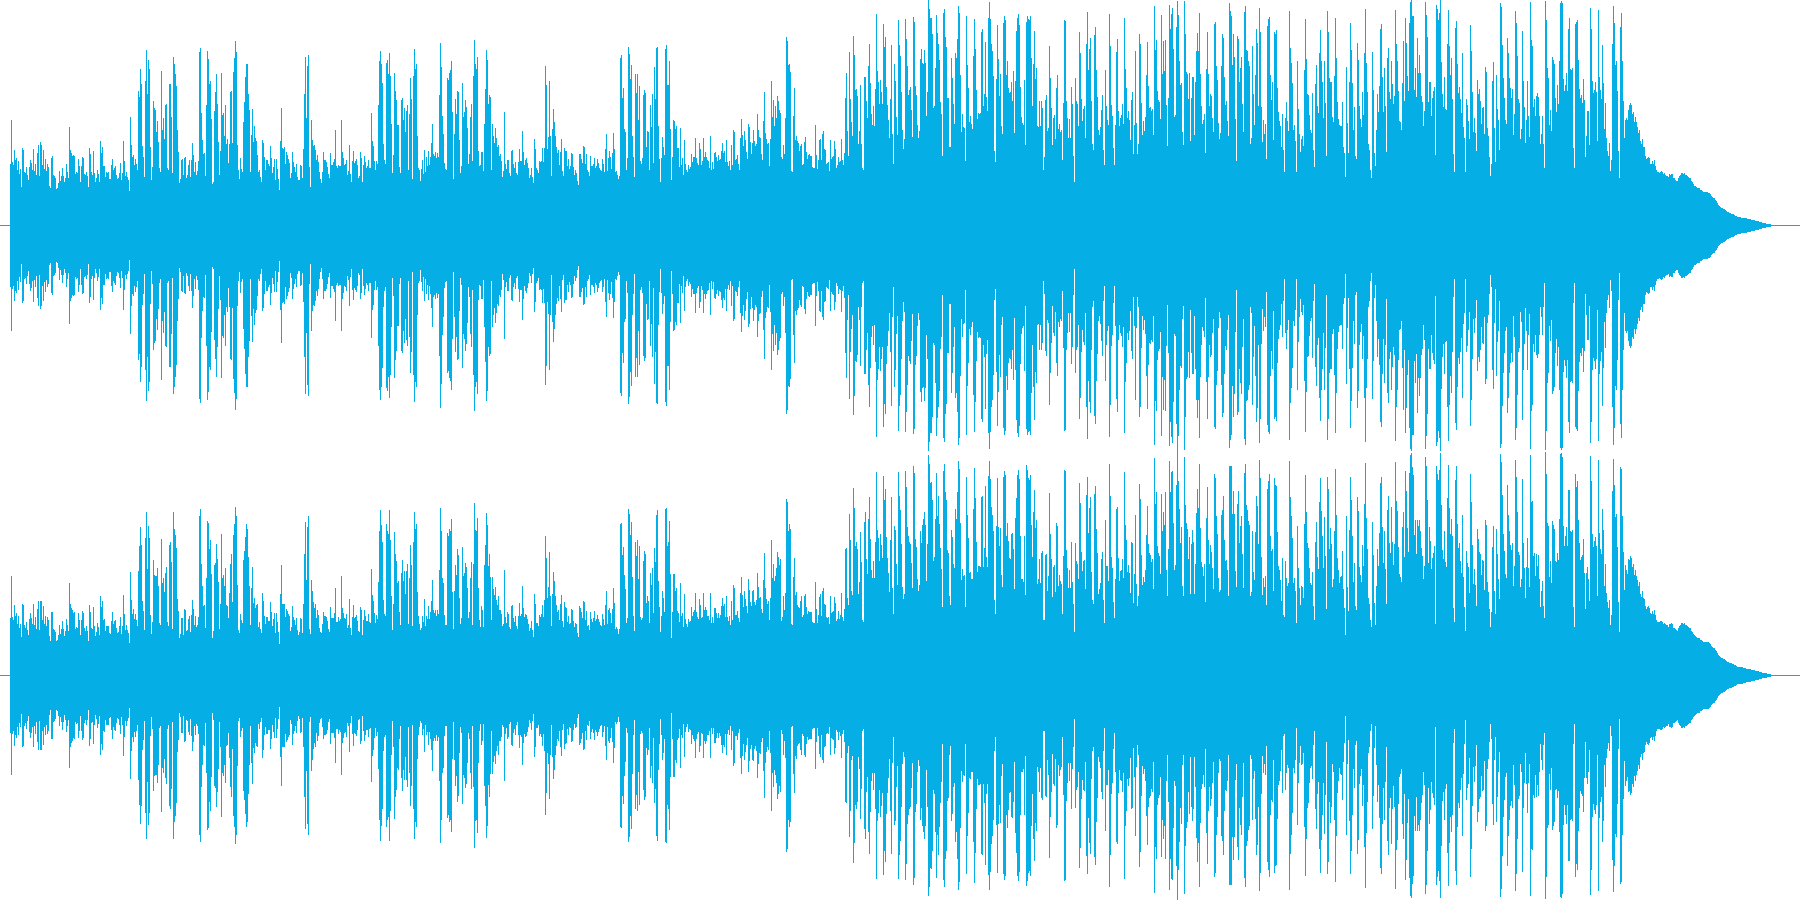 Warm pops with a fun recorder's reproduced waveform